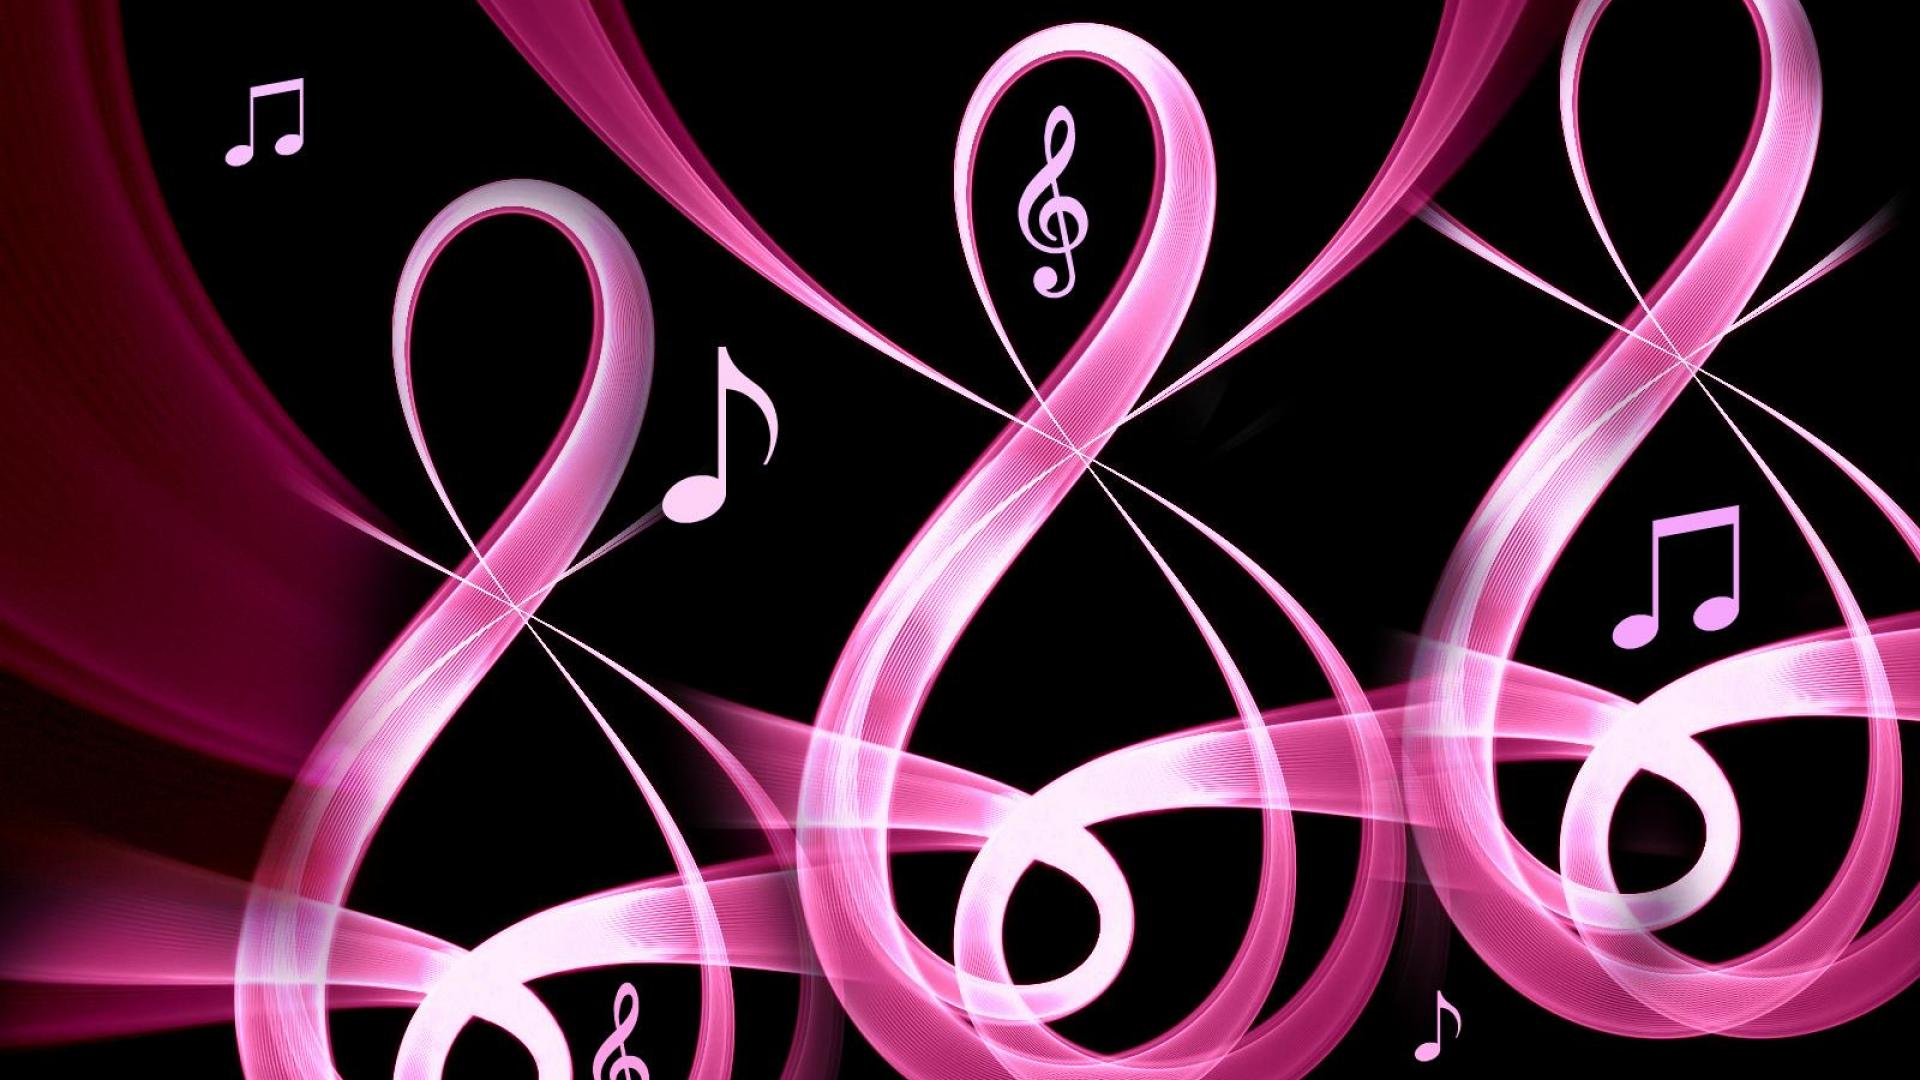 Wallpaperwiki Music Note Image Download Free PIC WPD005352